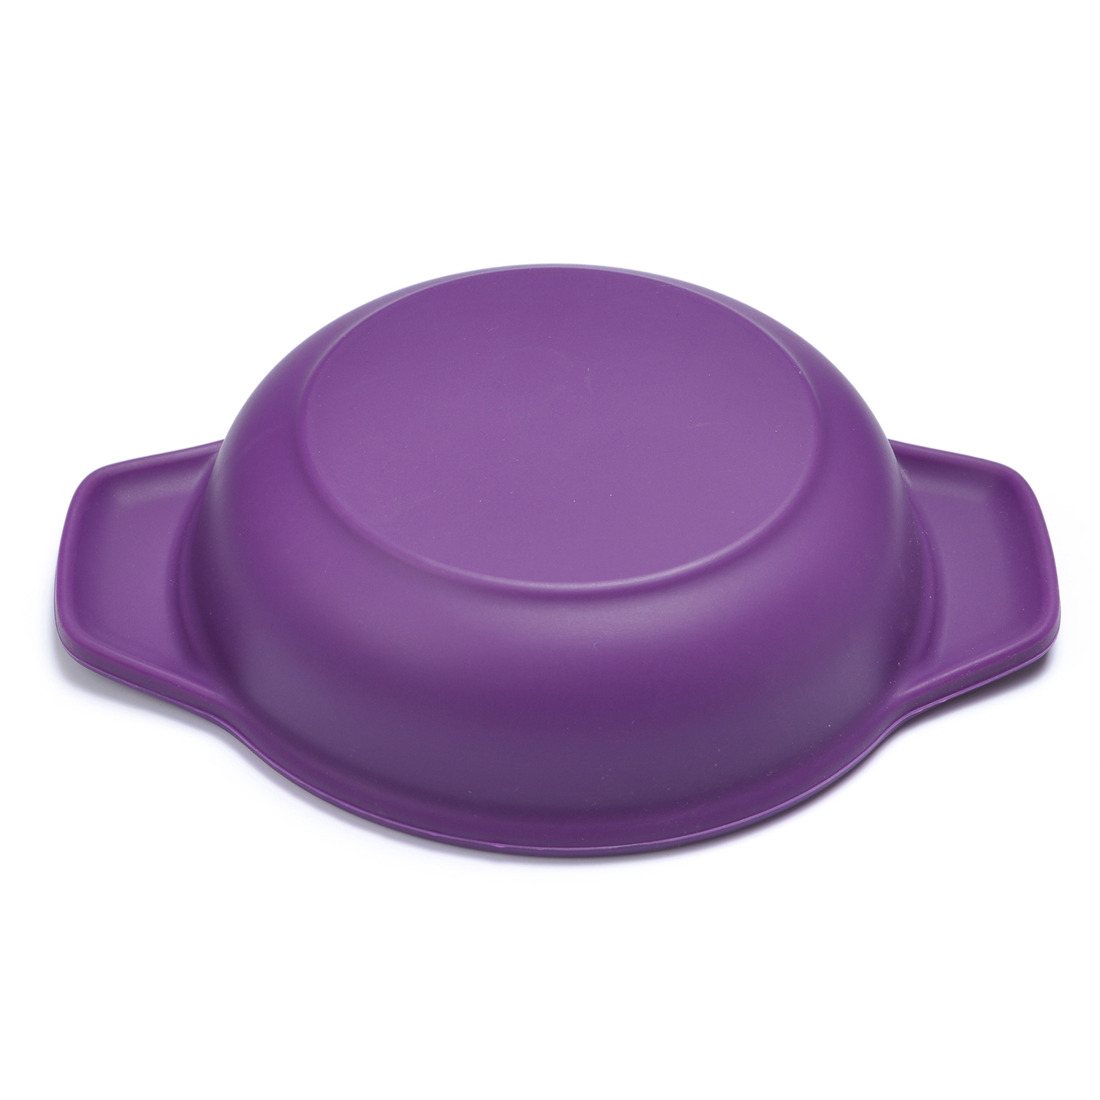 Silicone Pet Bowl Food Tray Food Container-4